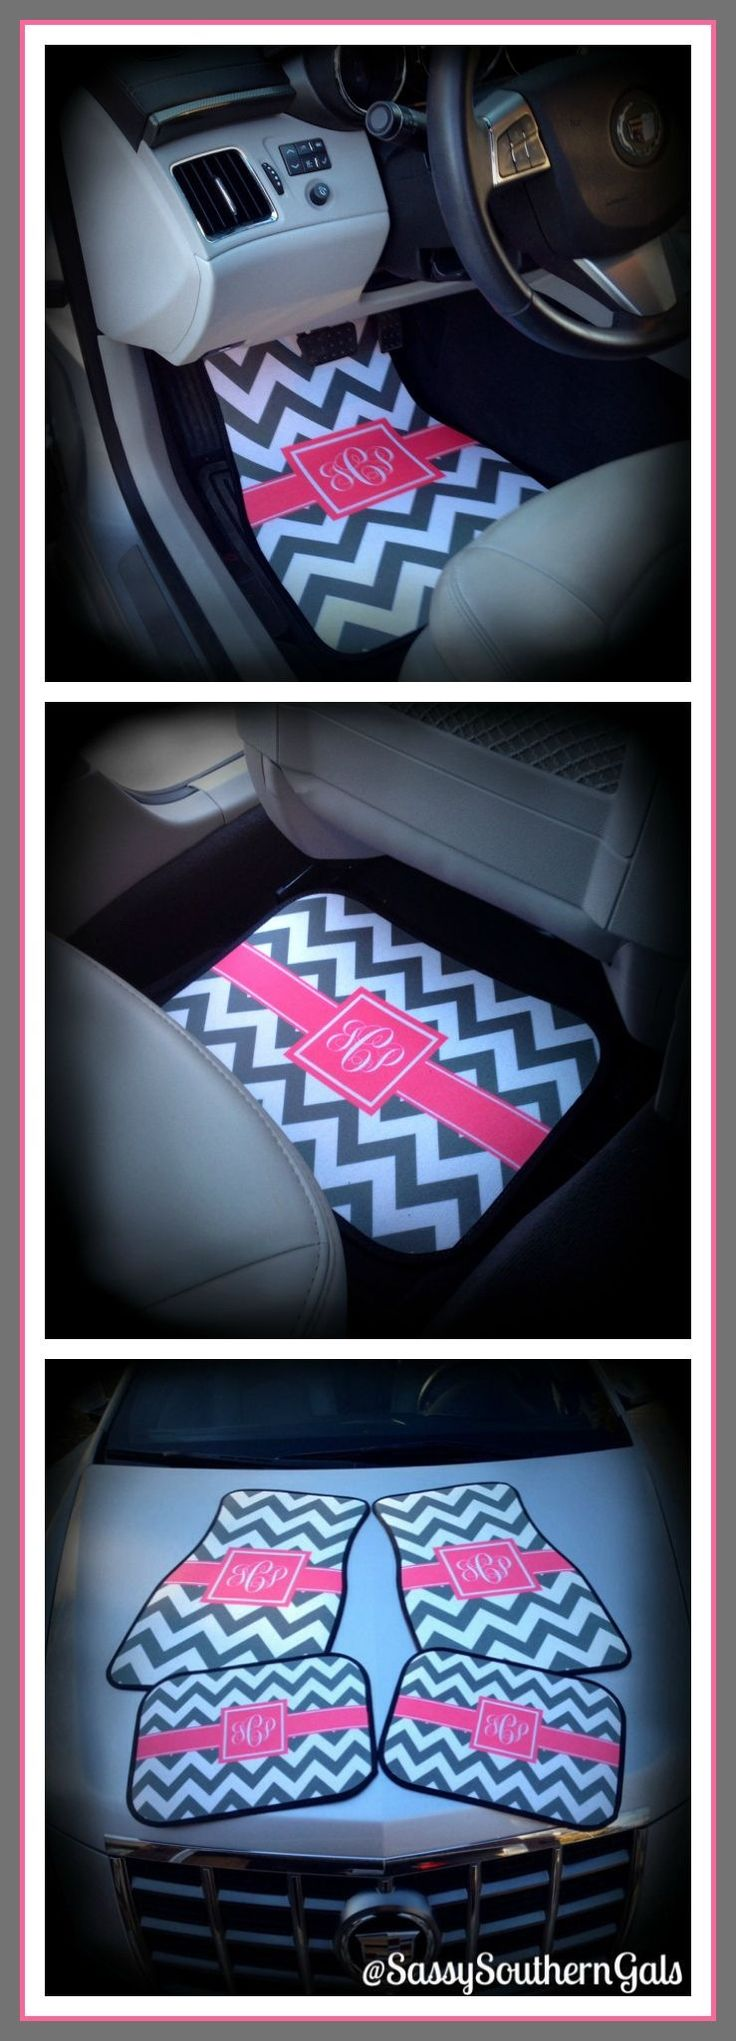 Floor mats dream cars - Sweet 16 Gift Monogrammed Car Floor Mats New Driver Gift Cute Car Accessories Monogrammed Gift Monogrammed Car Mats Car Accessories